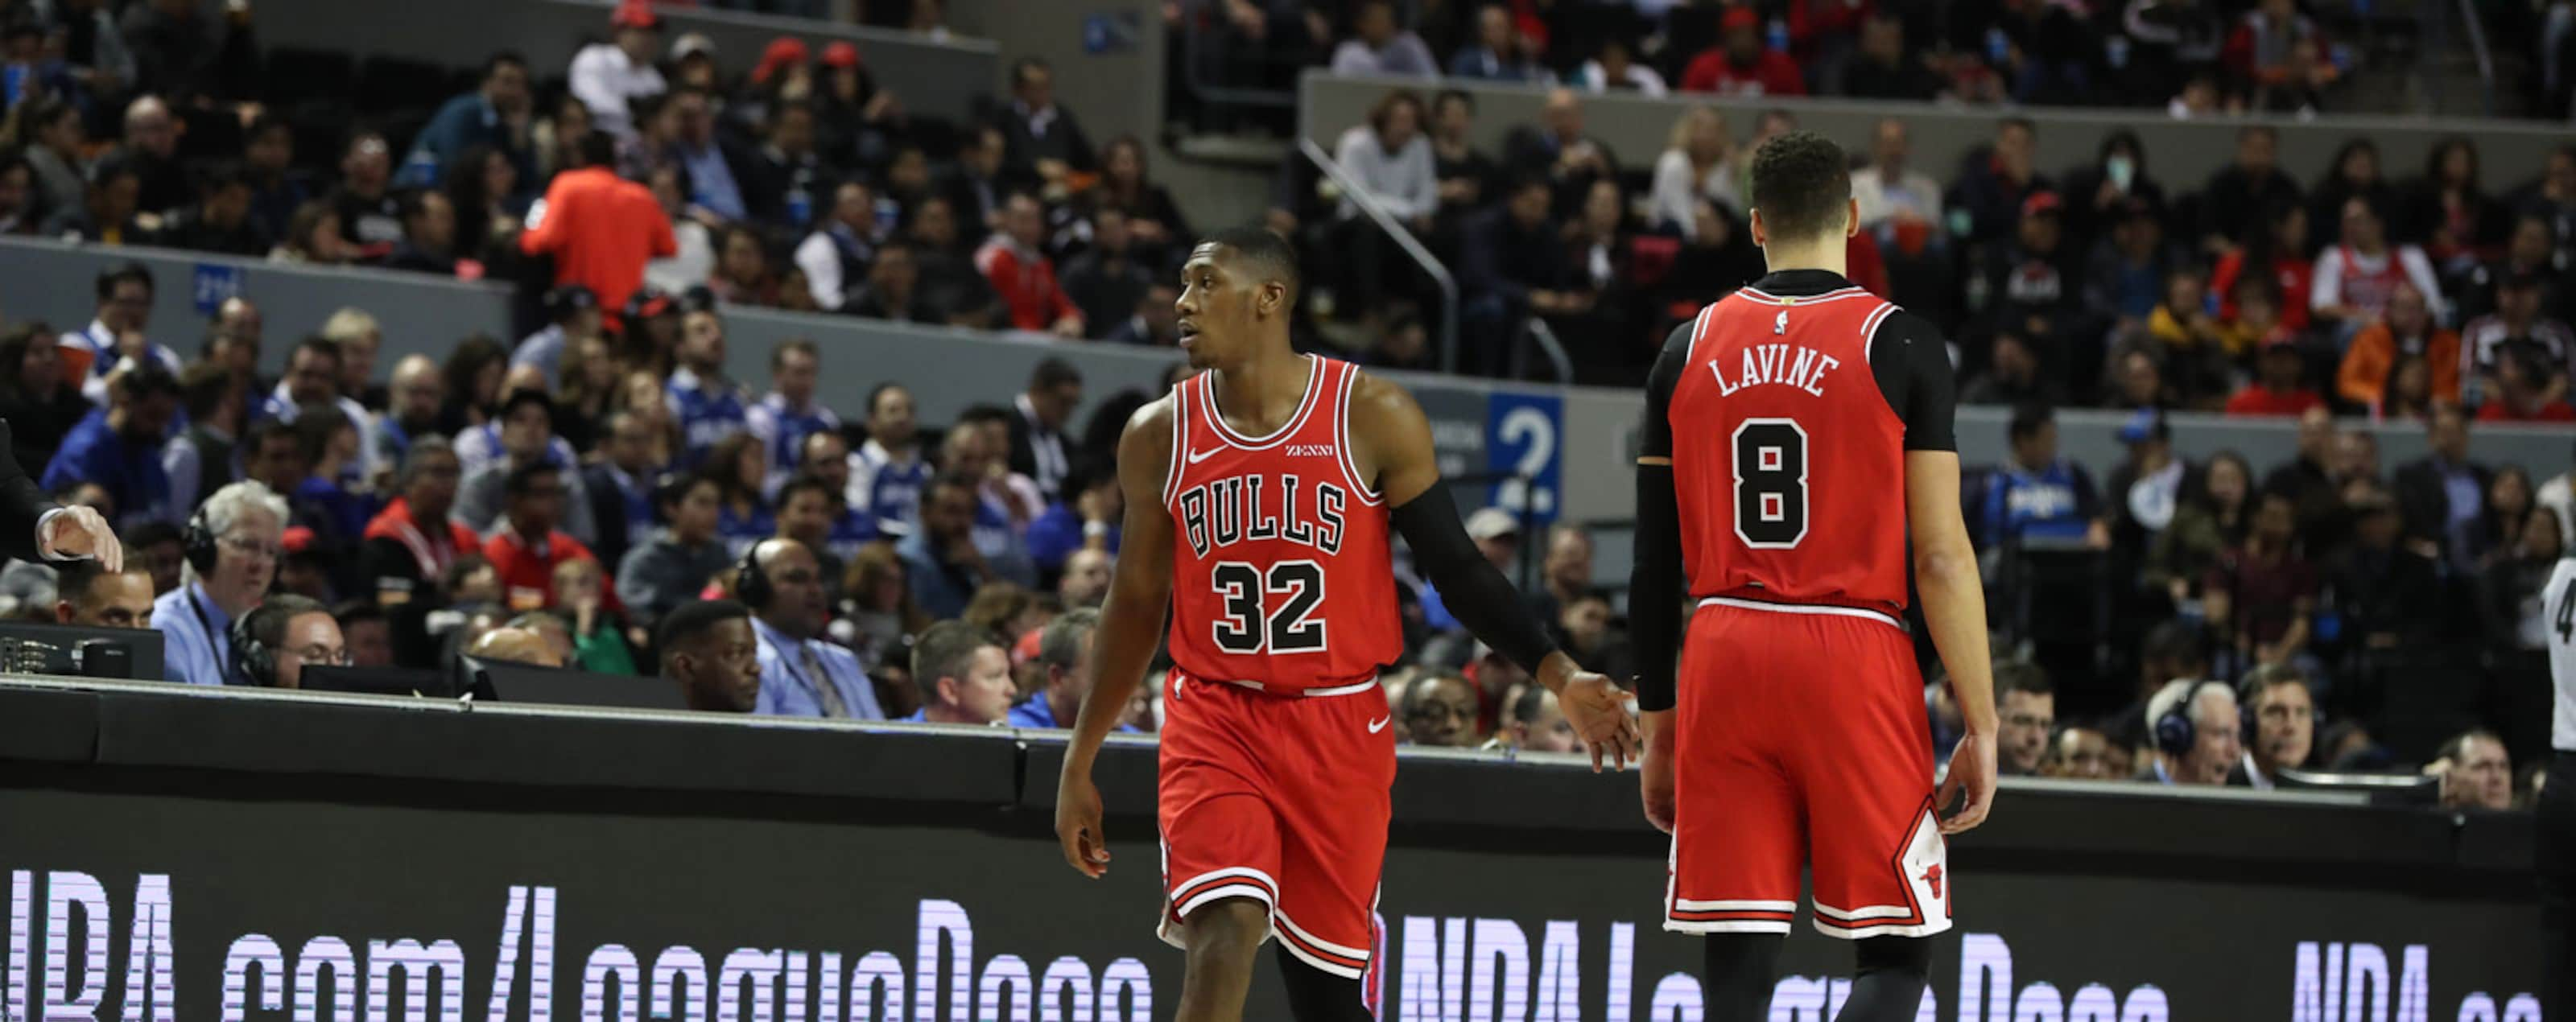 Kris Dunn and Zach LaVine walking past each other during the NBA Mexico City game against the Orlando Magic.